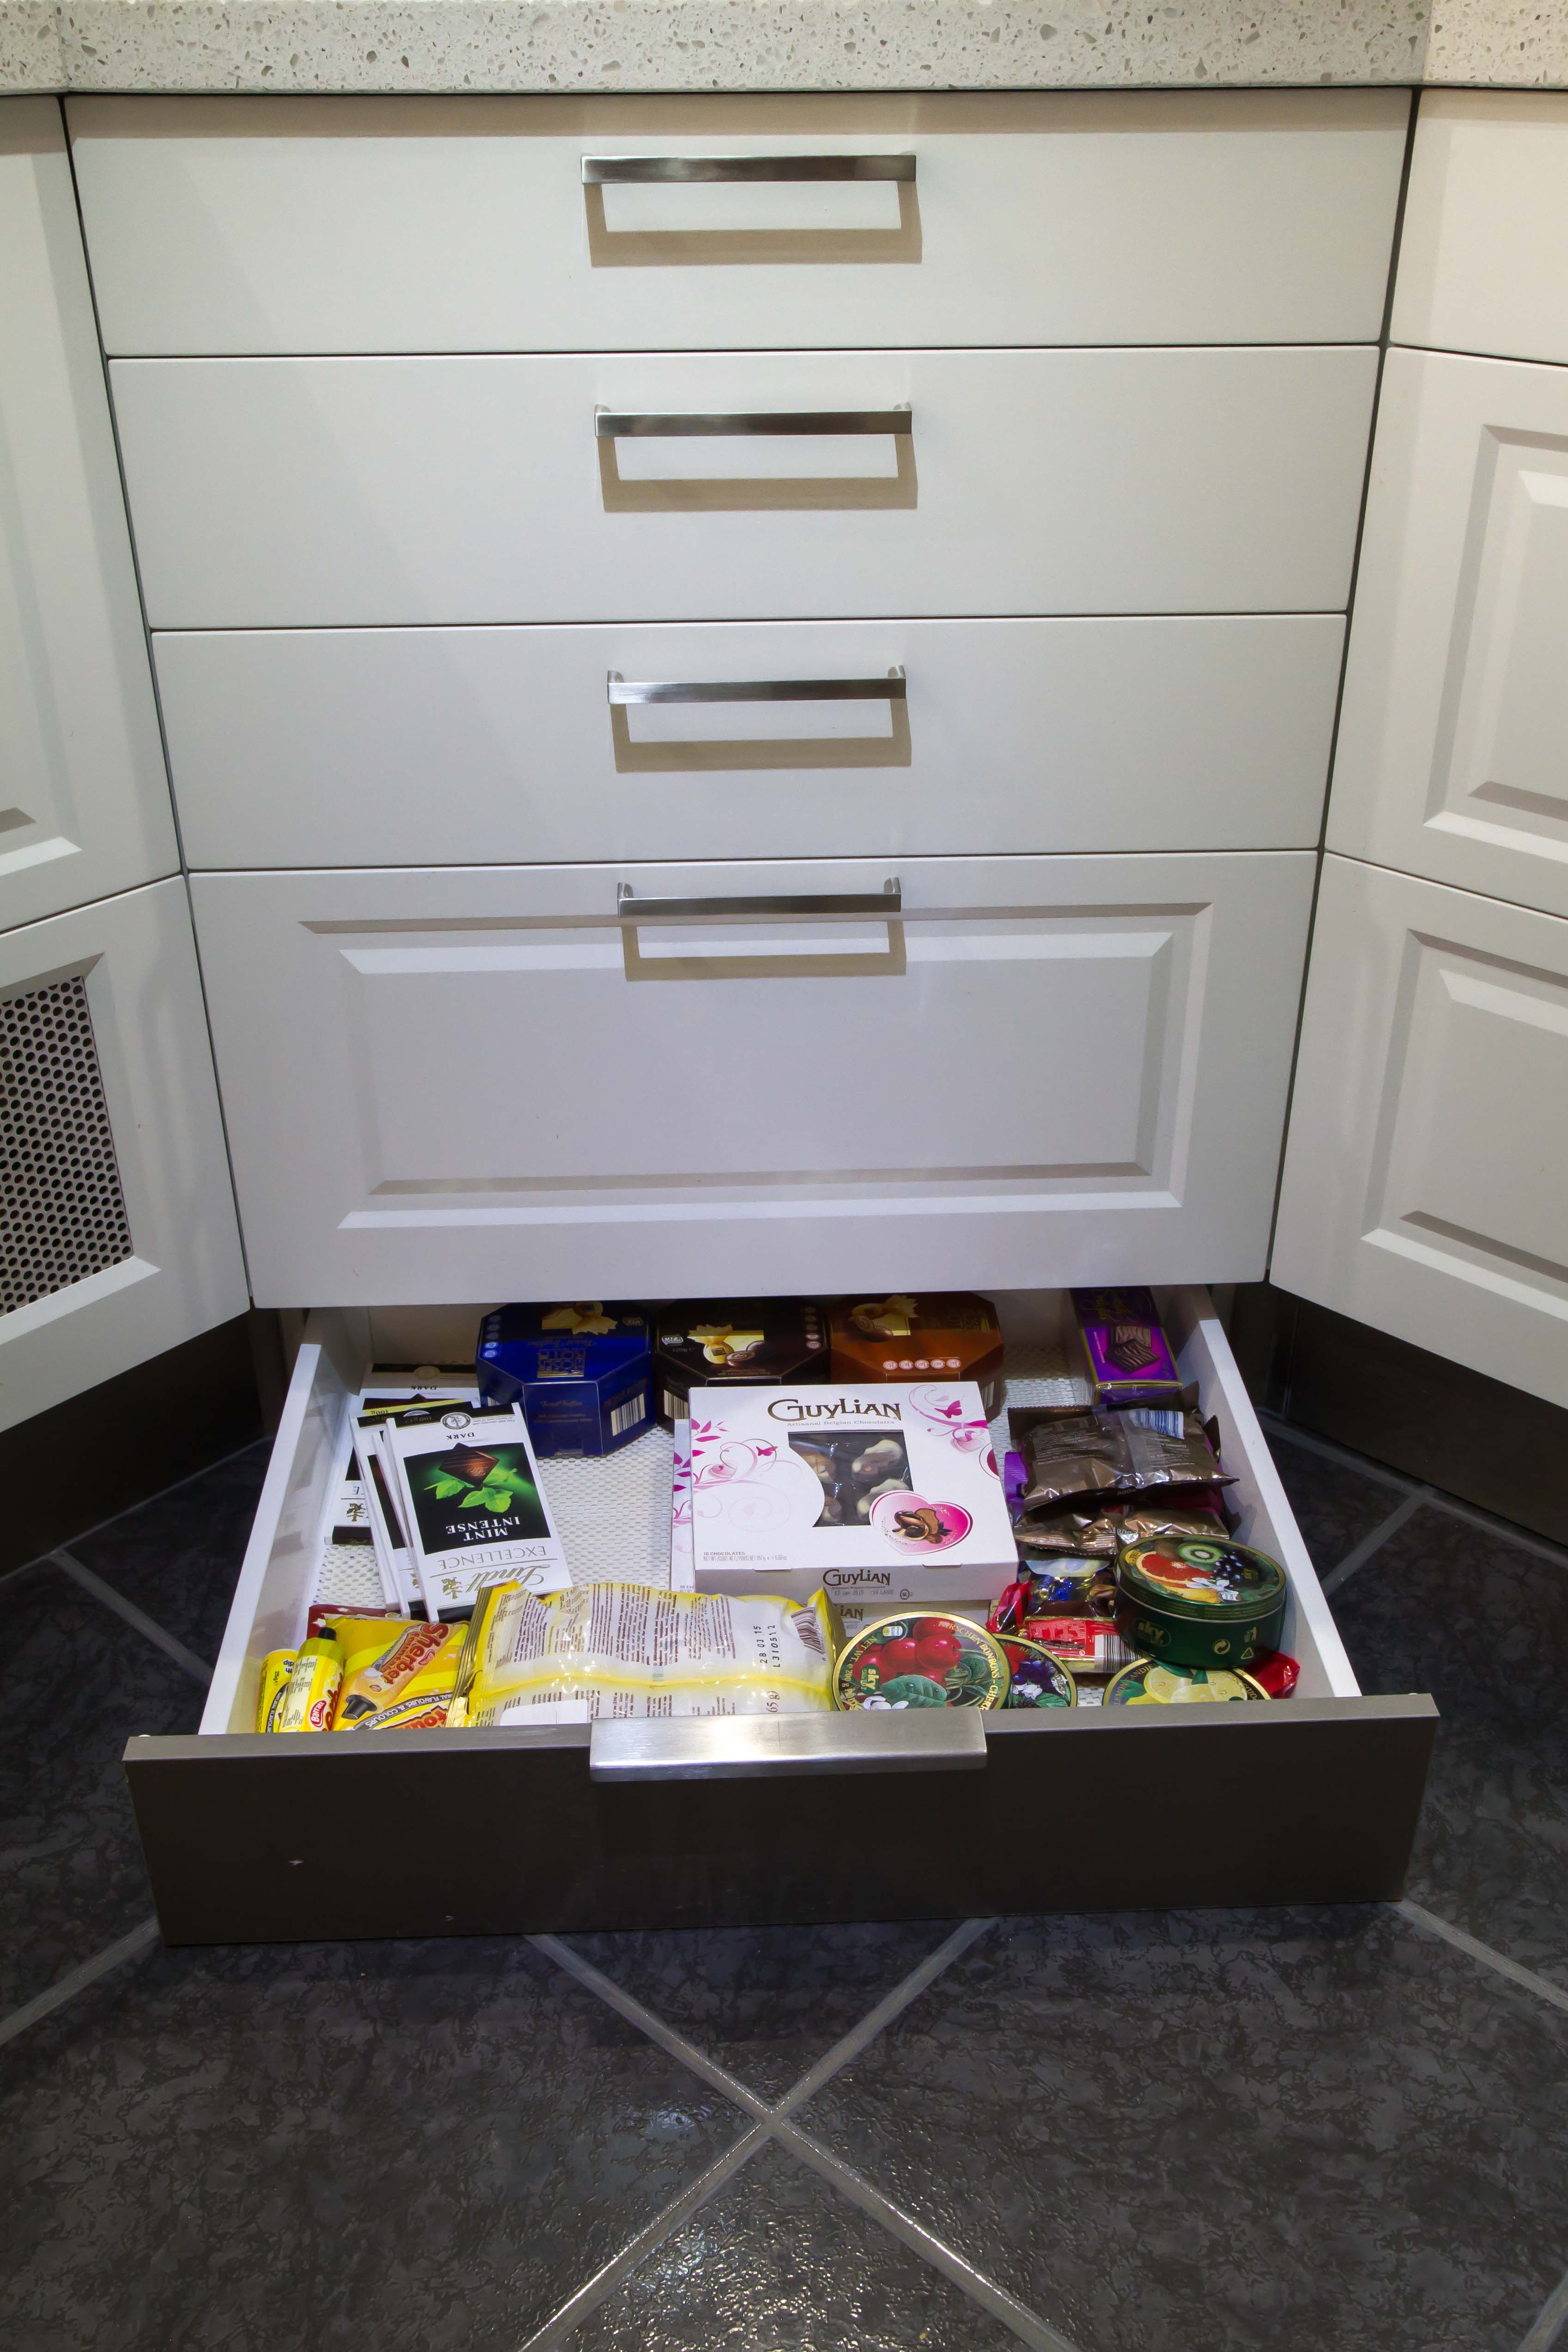 Kickboard drawer allows you to hide chocolate from the kids! www.thekitchendesigncentre.com.au @thekitchen_designcentre